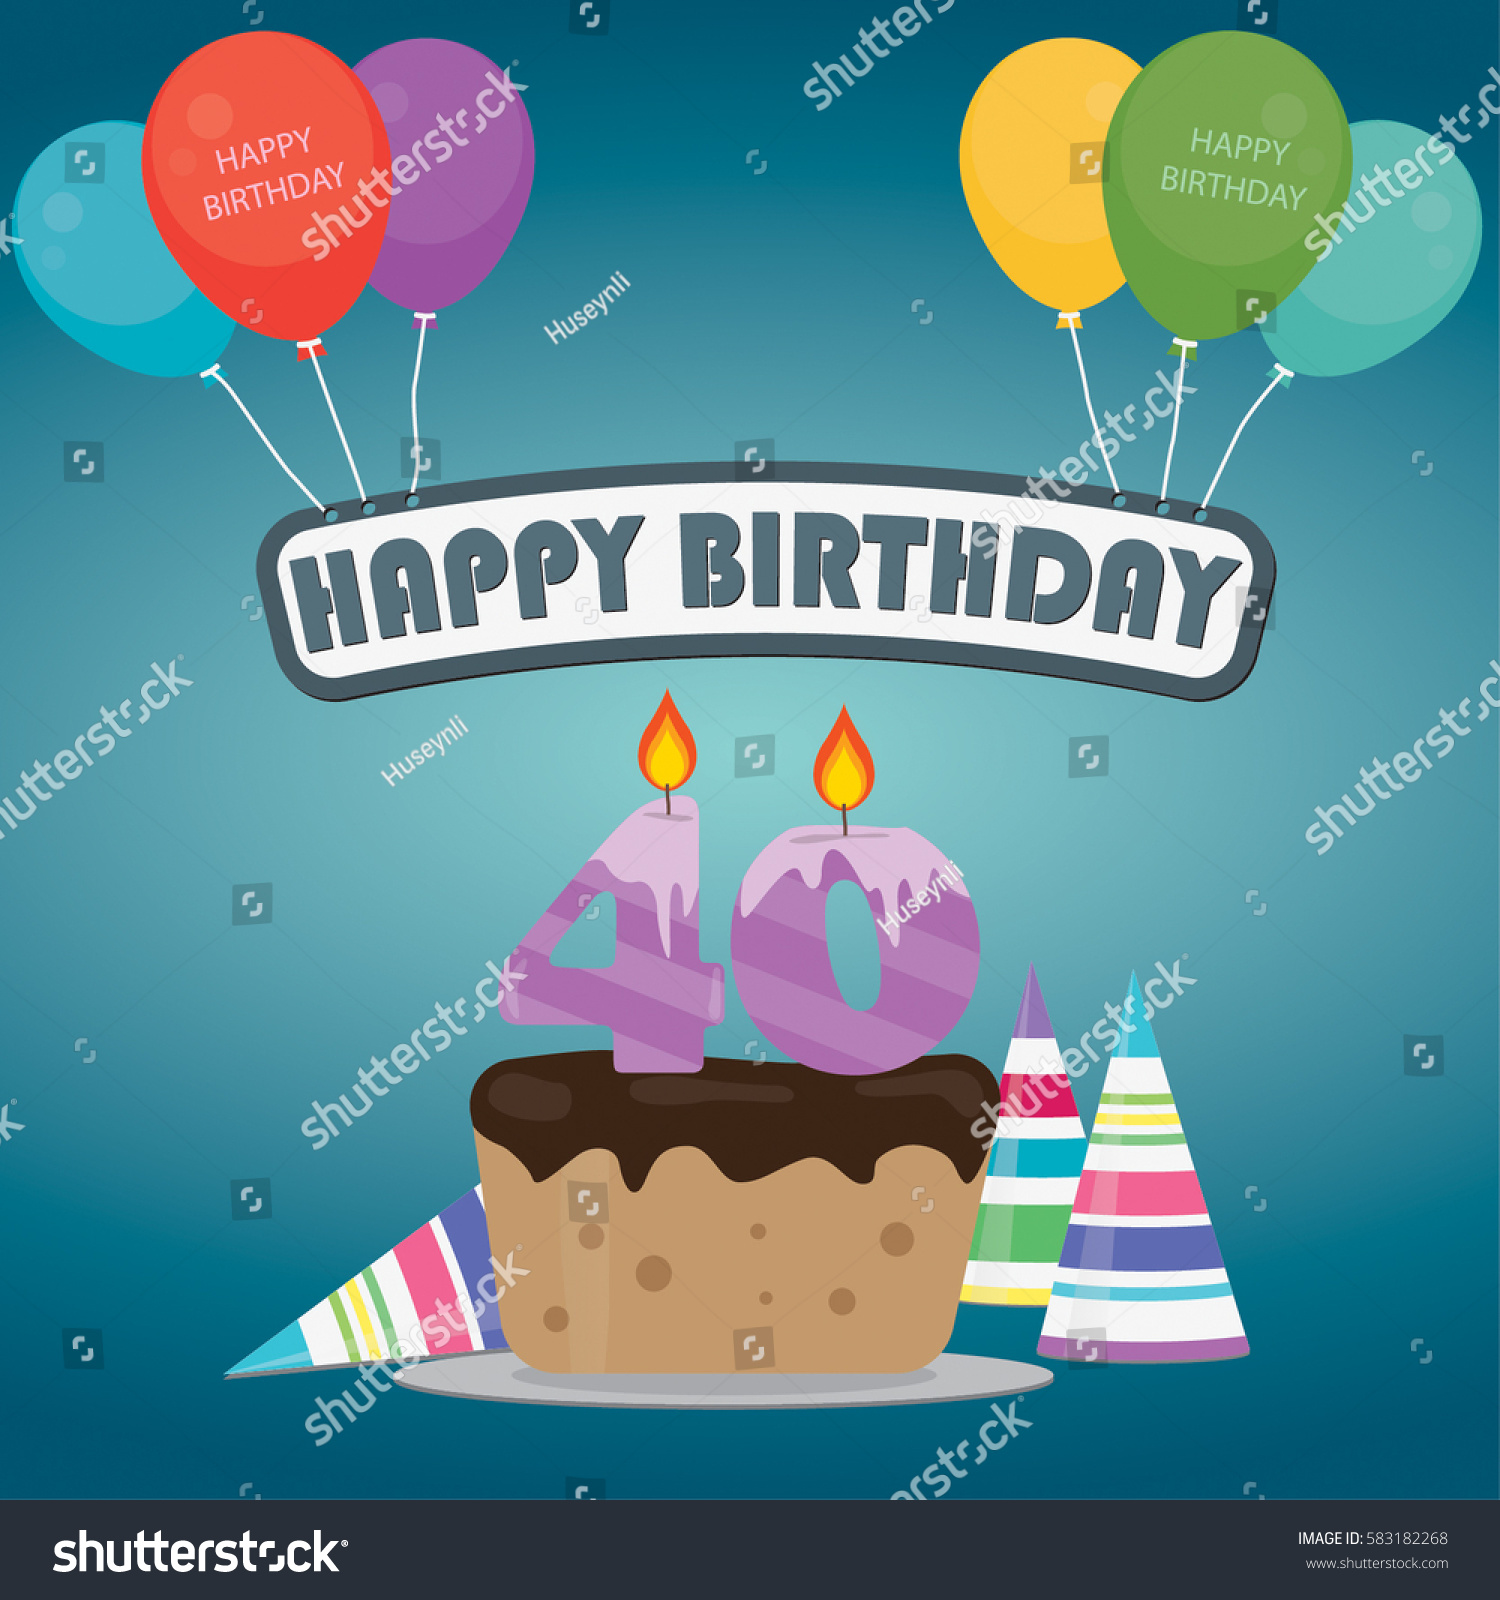 40th Birthday Cake Decoration Background Flat Stock Vector 583182268